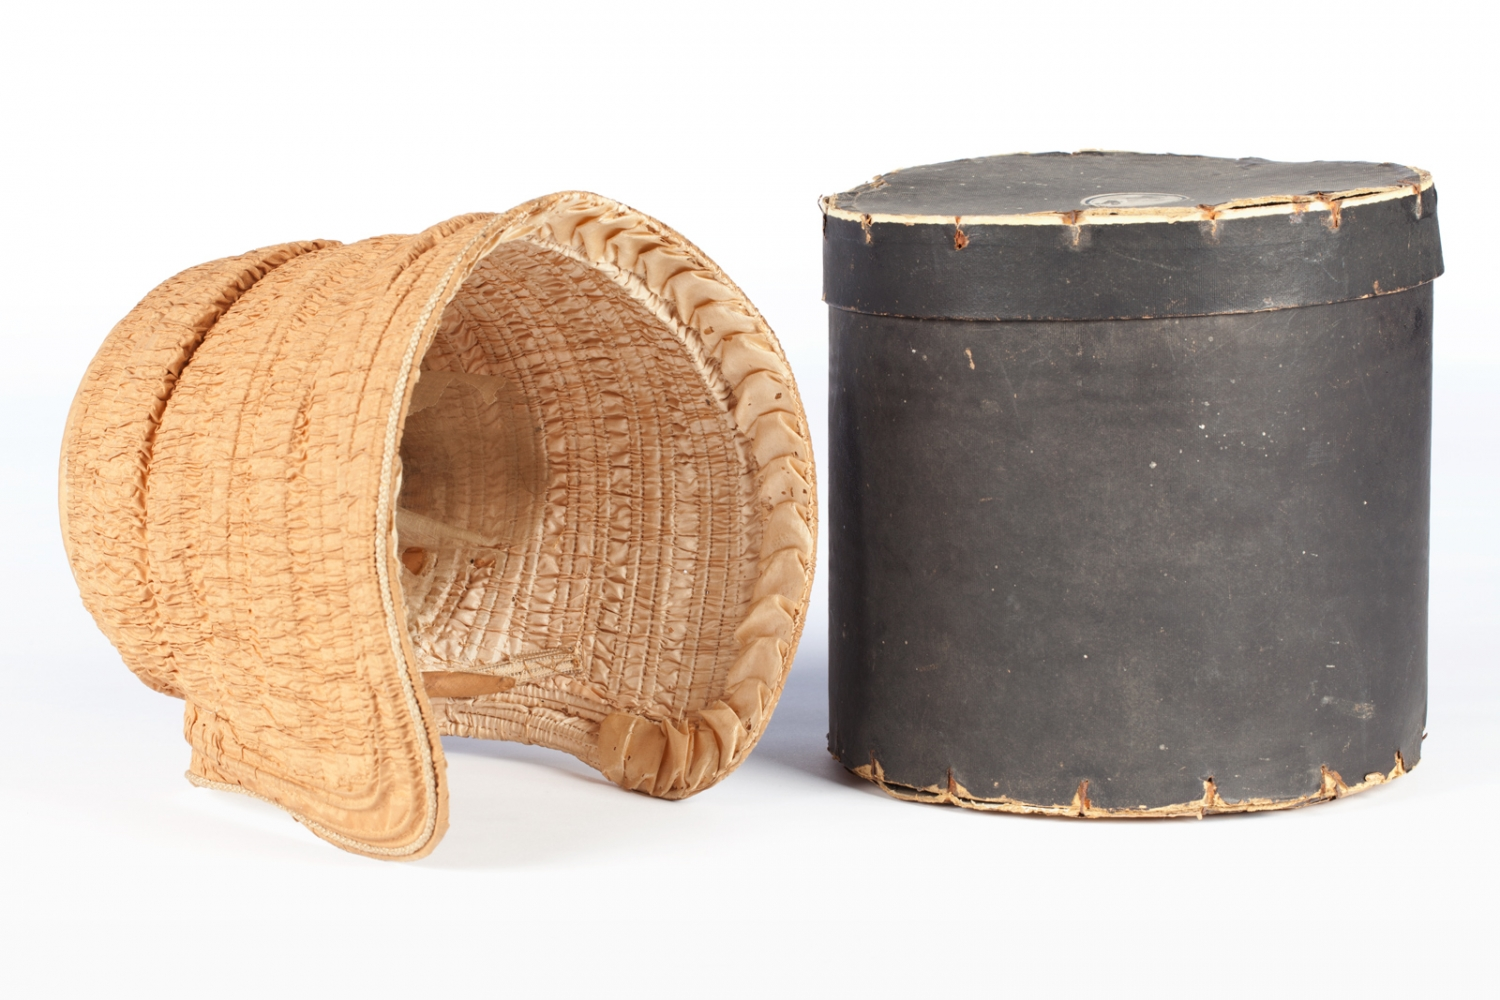 This is an example of a drawn bonnet and hat box.